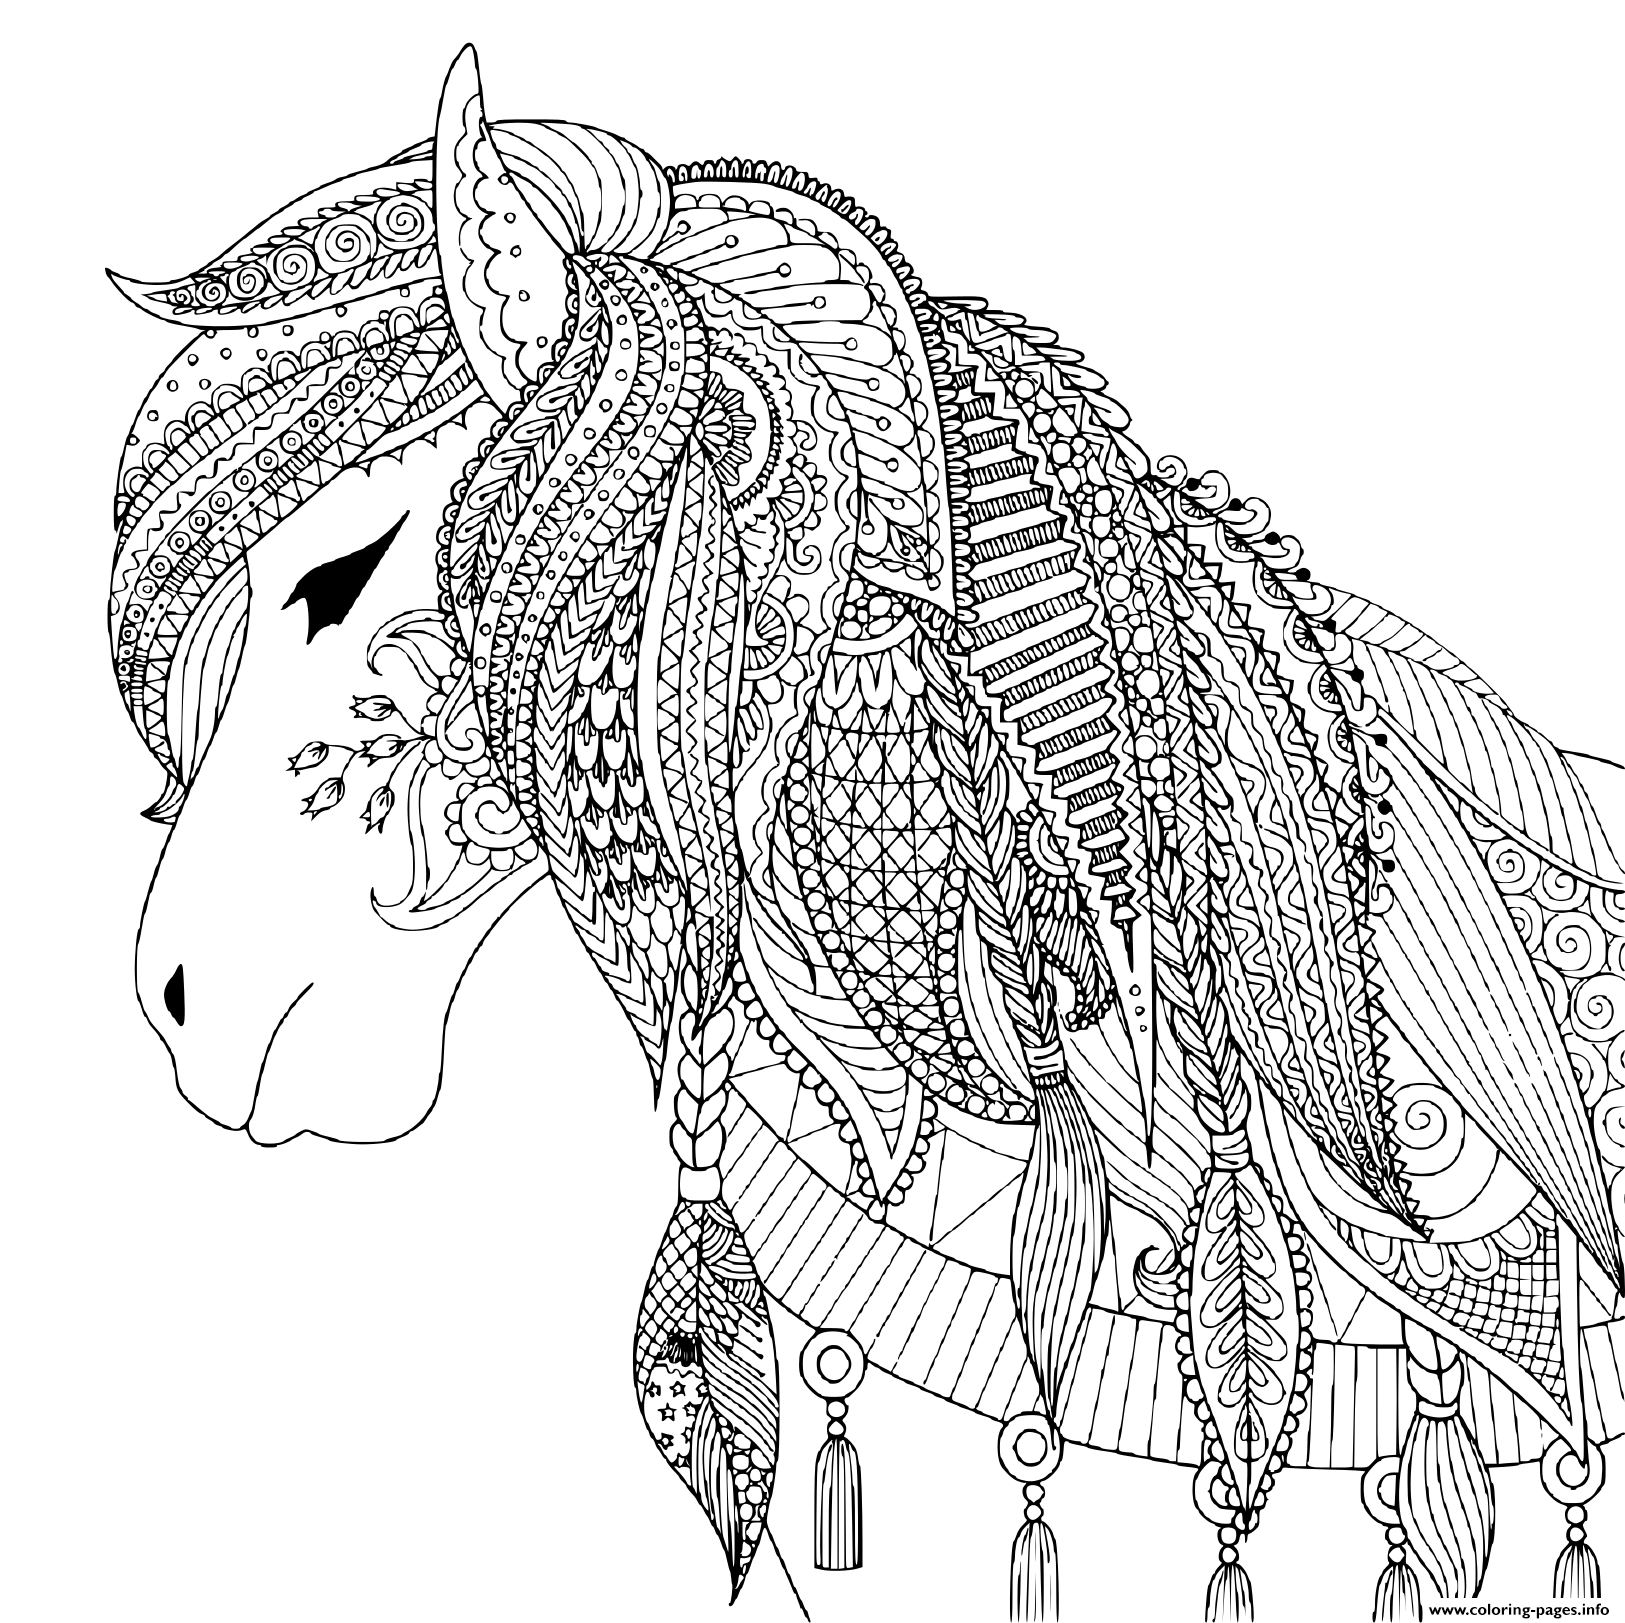 horse coloring pages online get this free printable horses coloring pages for kids i86om pages horse online coloring